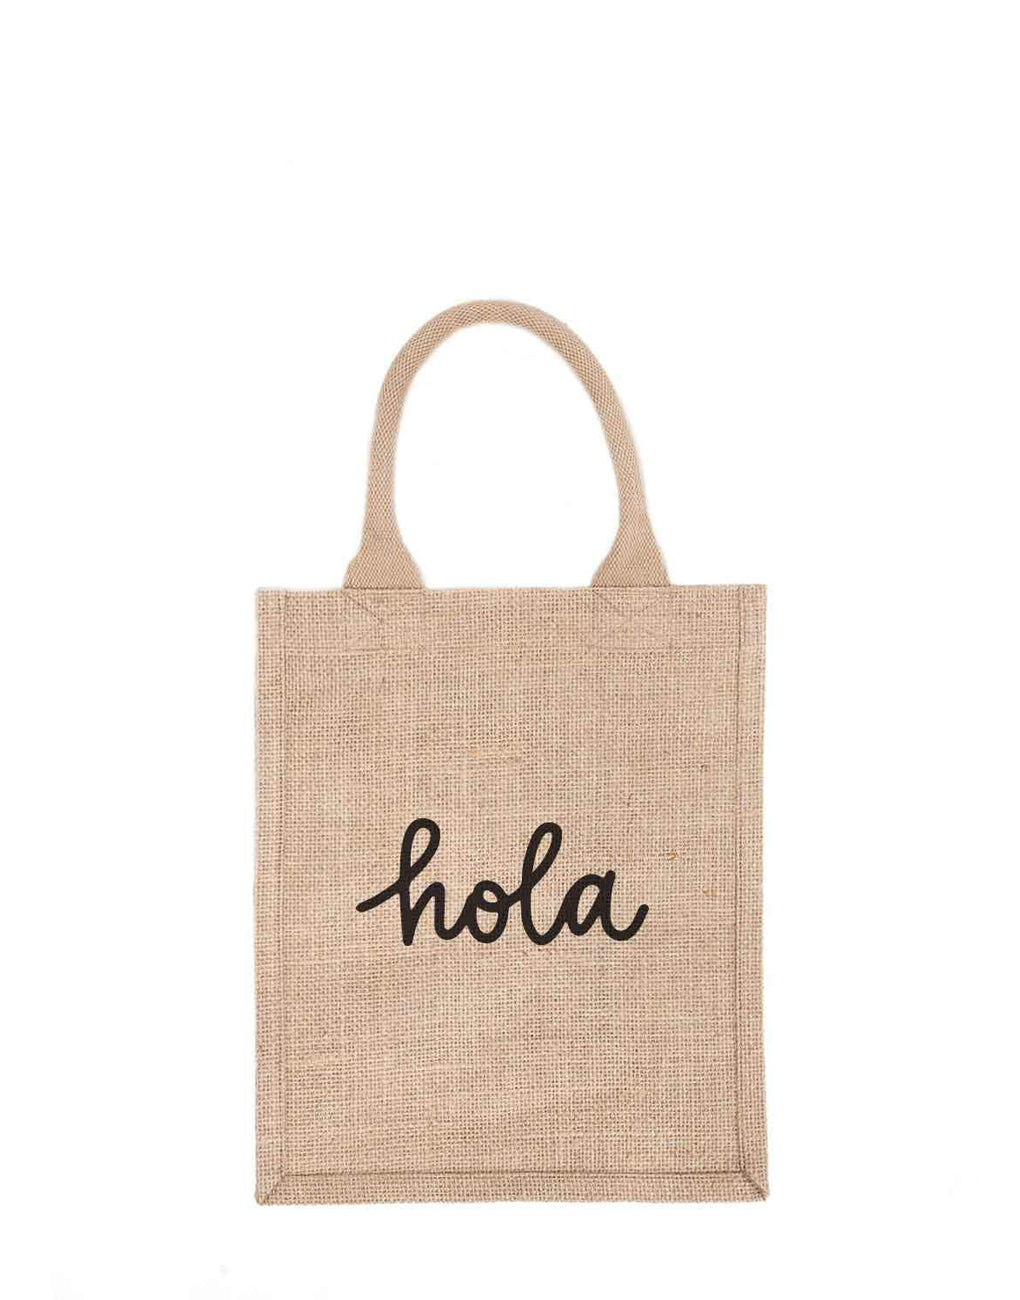 Medium Hola Reusable Gift Tote In Black Font | The Little Market